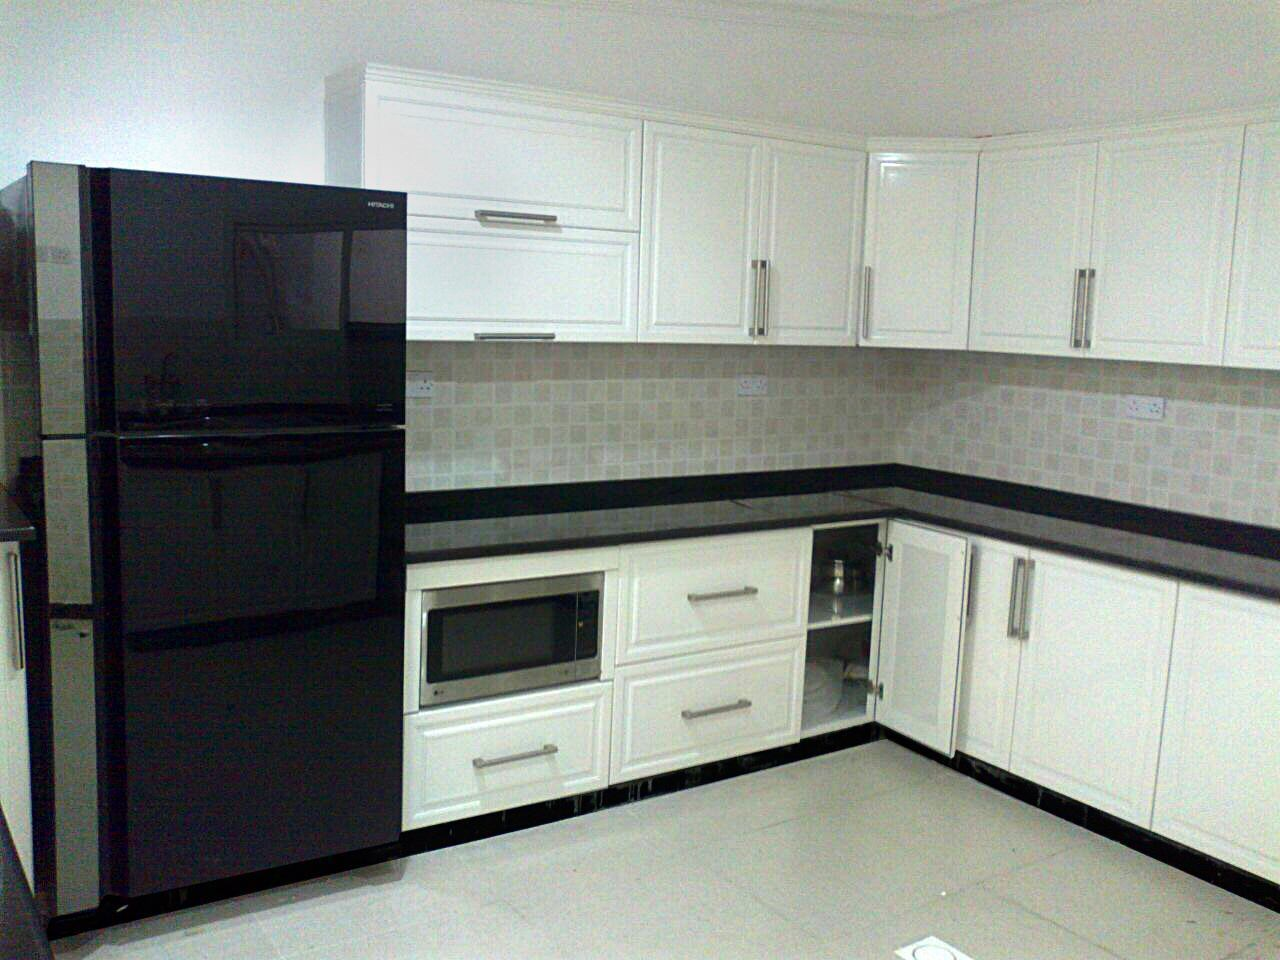 Aluminium kitchen Ral finish type: Alutech